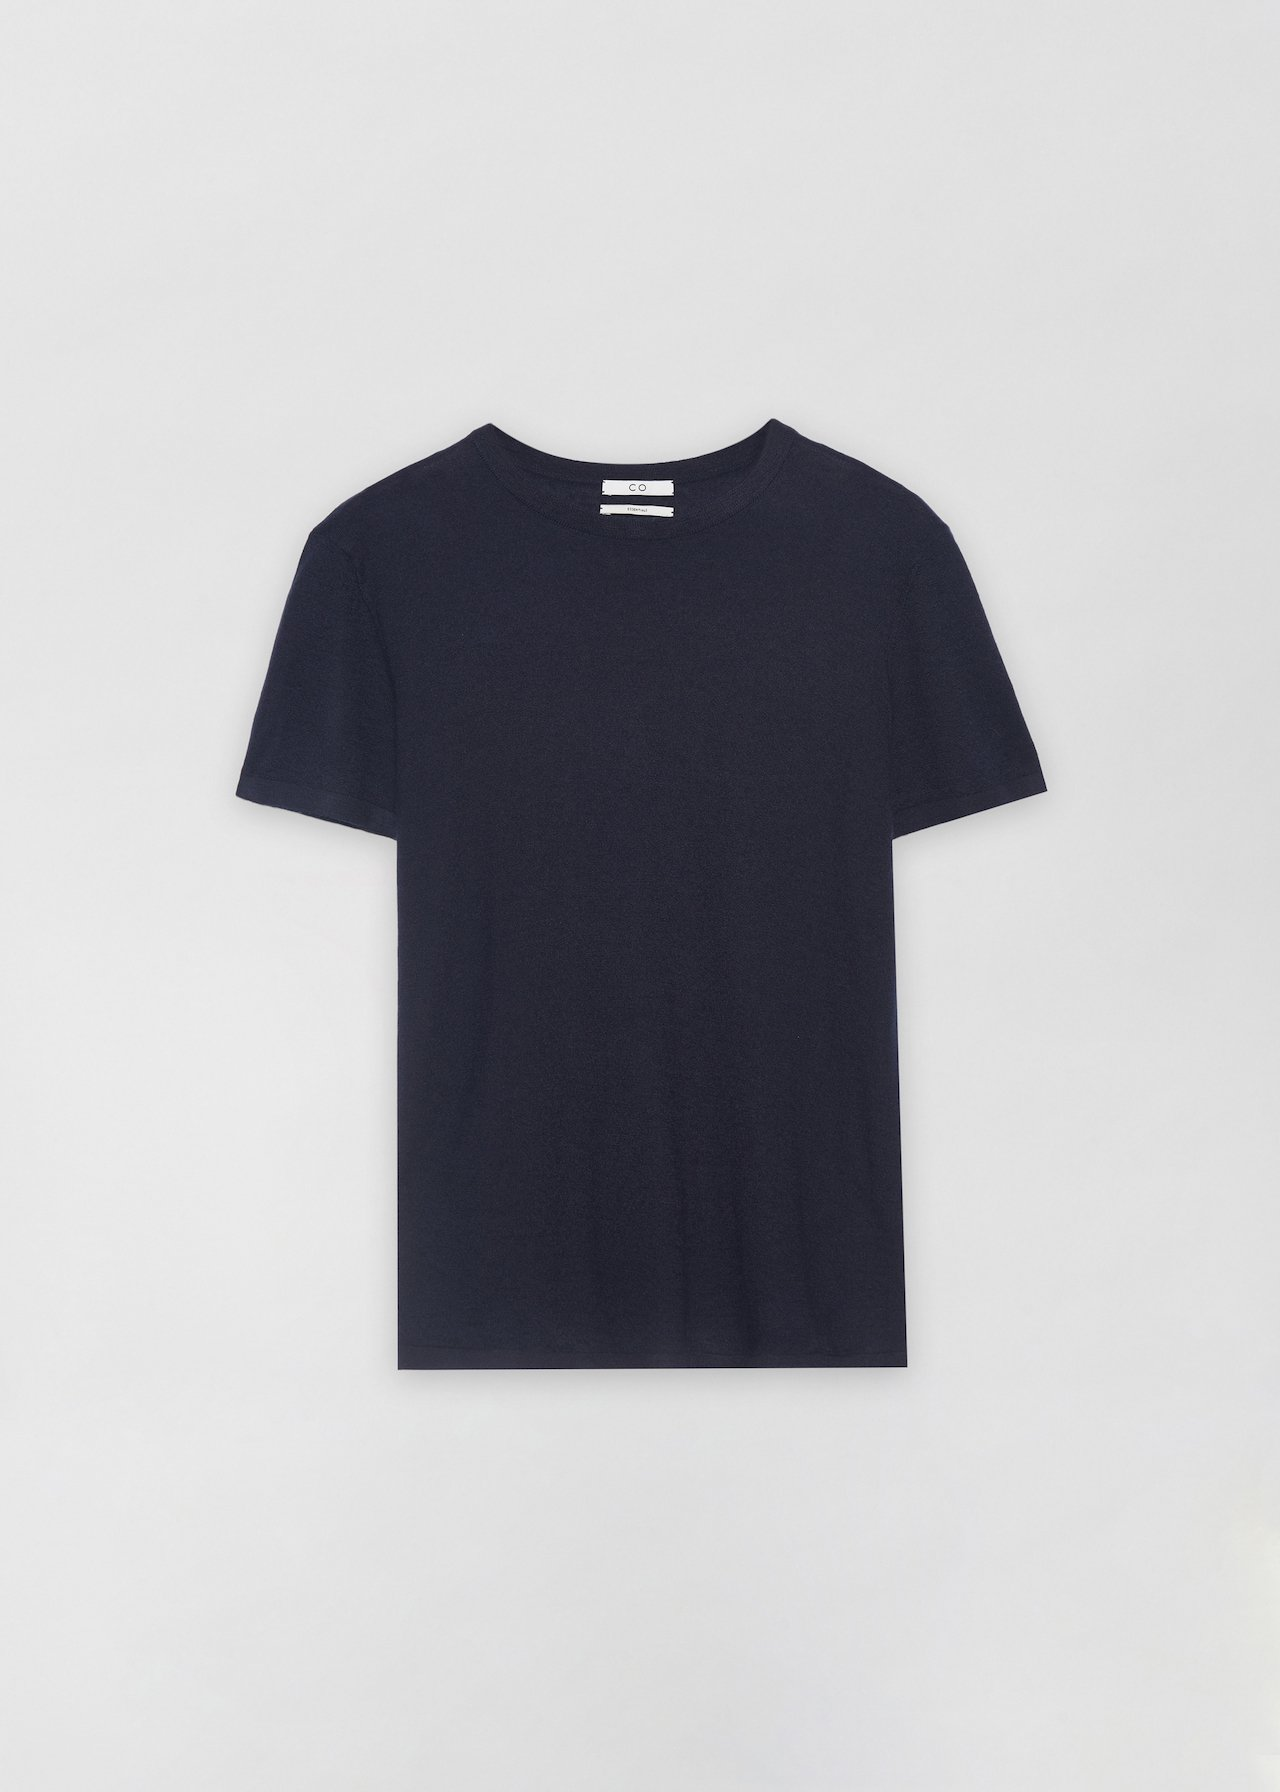 Cashmere T-Shirt - Taupe in Navy by Co Collections